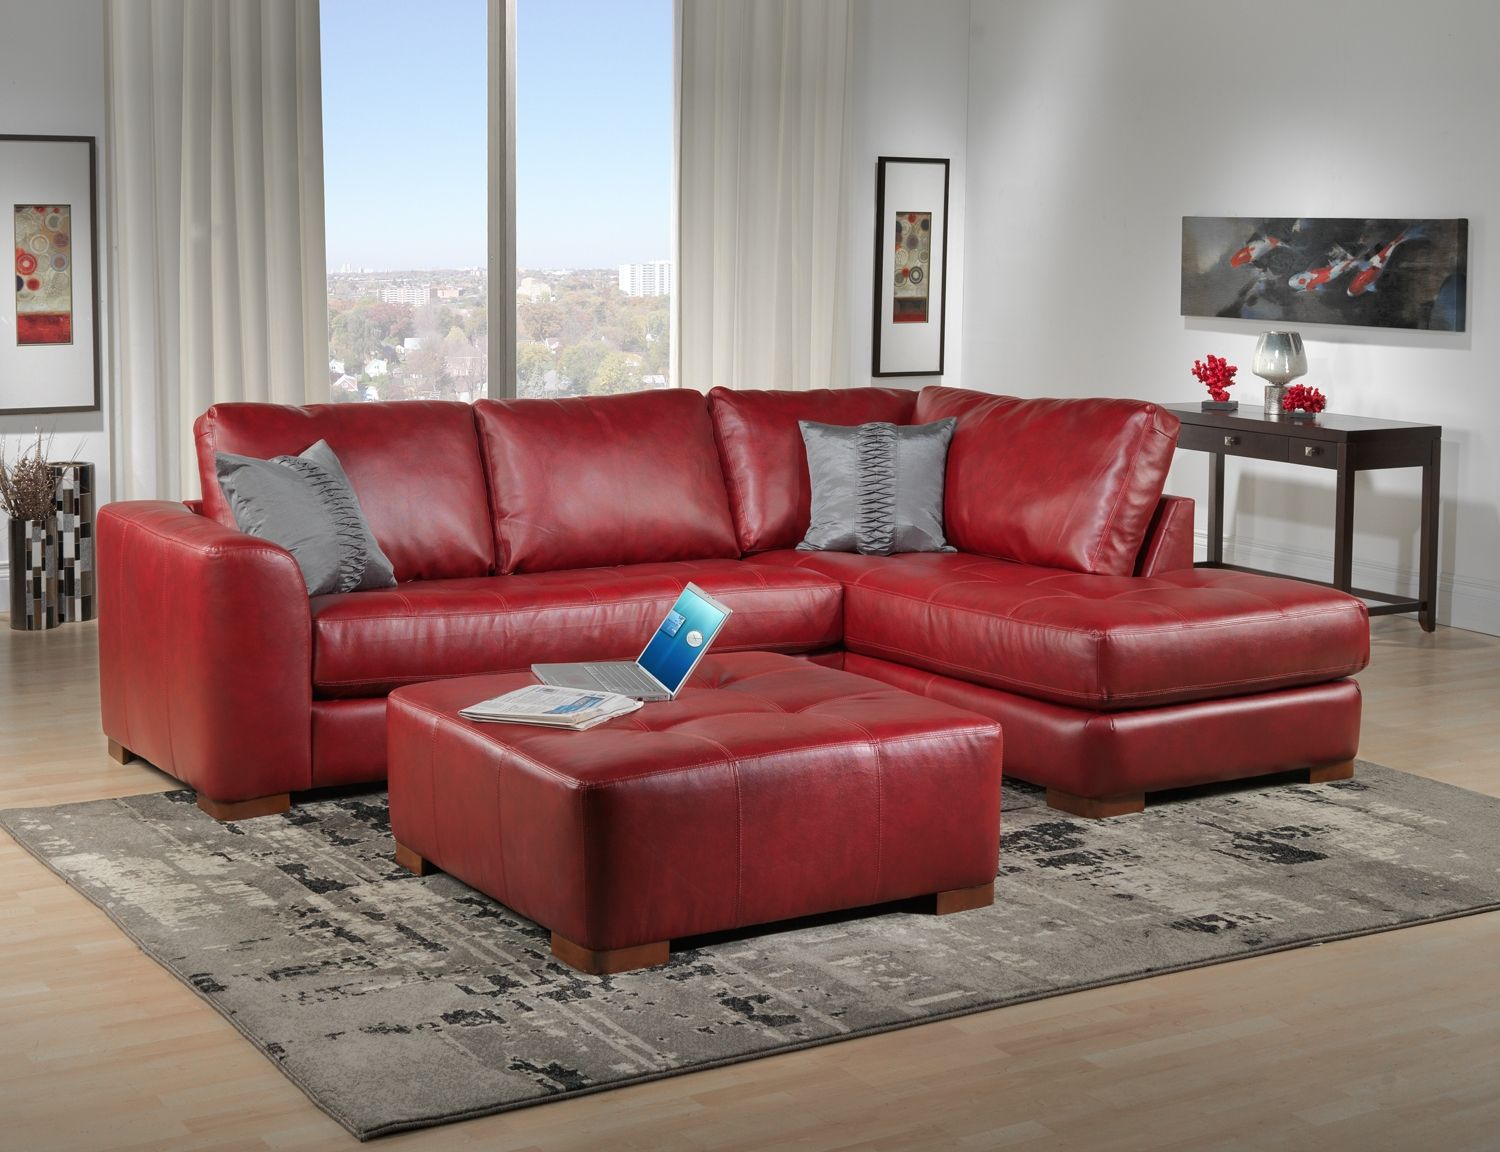 Living Room Decorating Ideas Red Sofa i want a red leather couch. | humble abode | pinterest | red